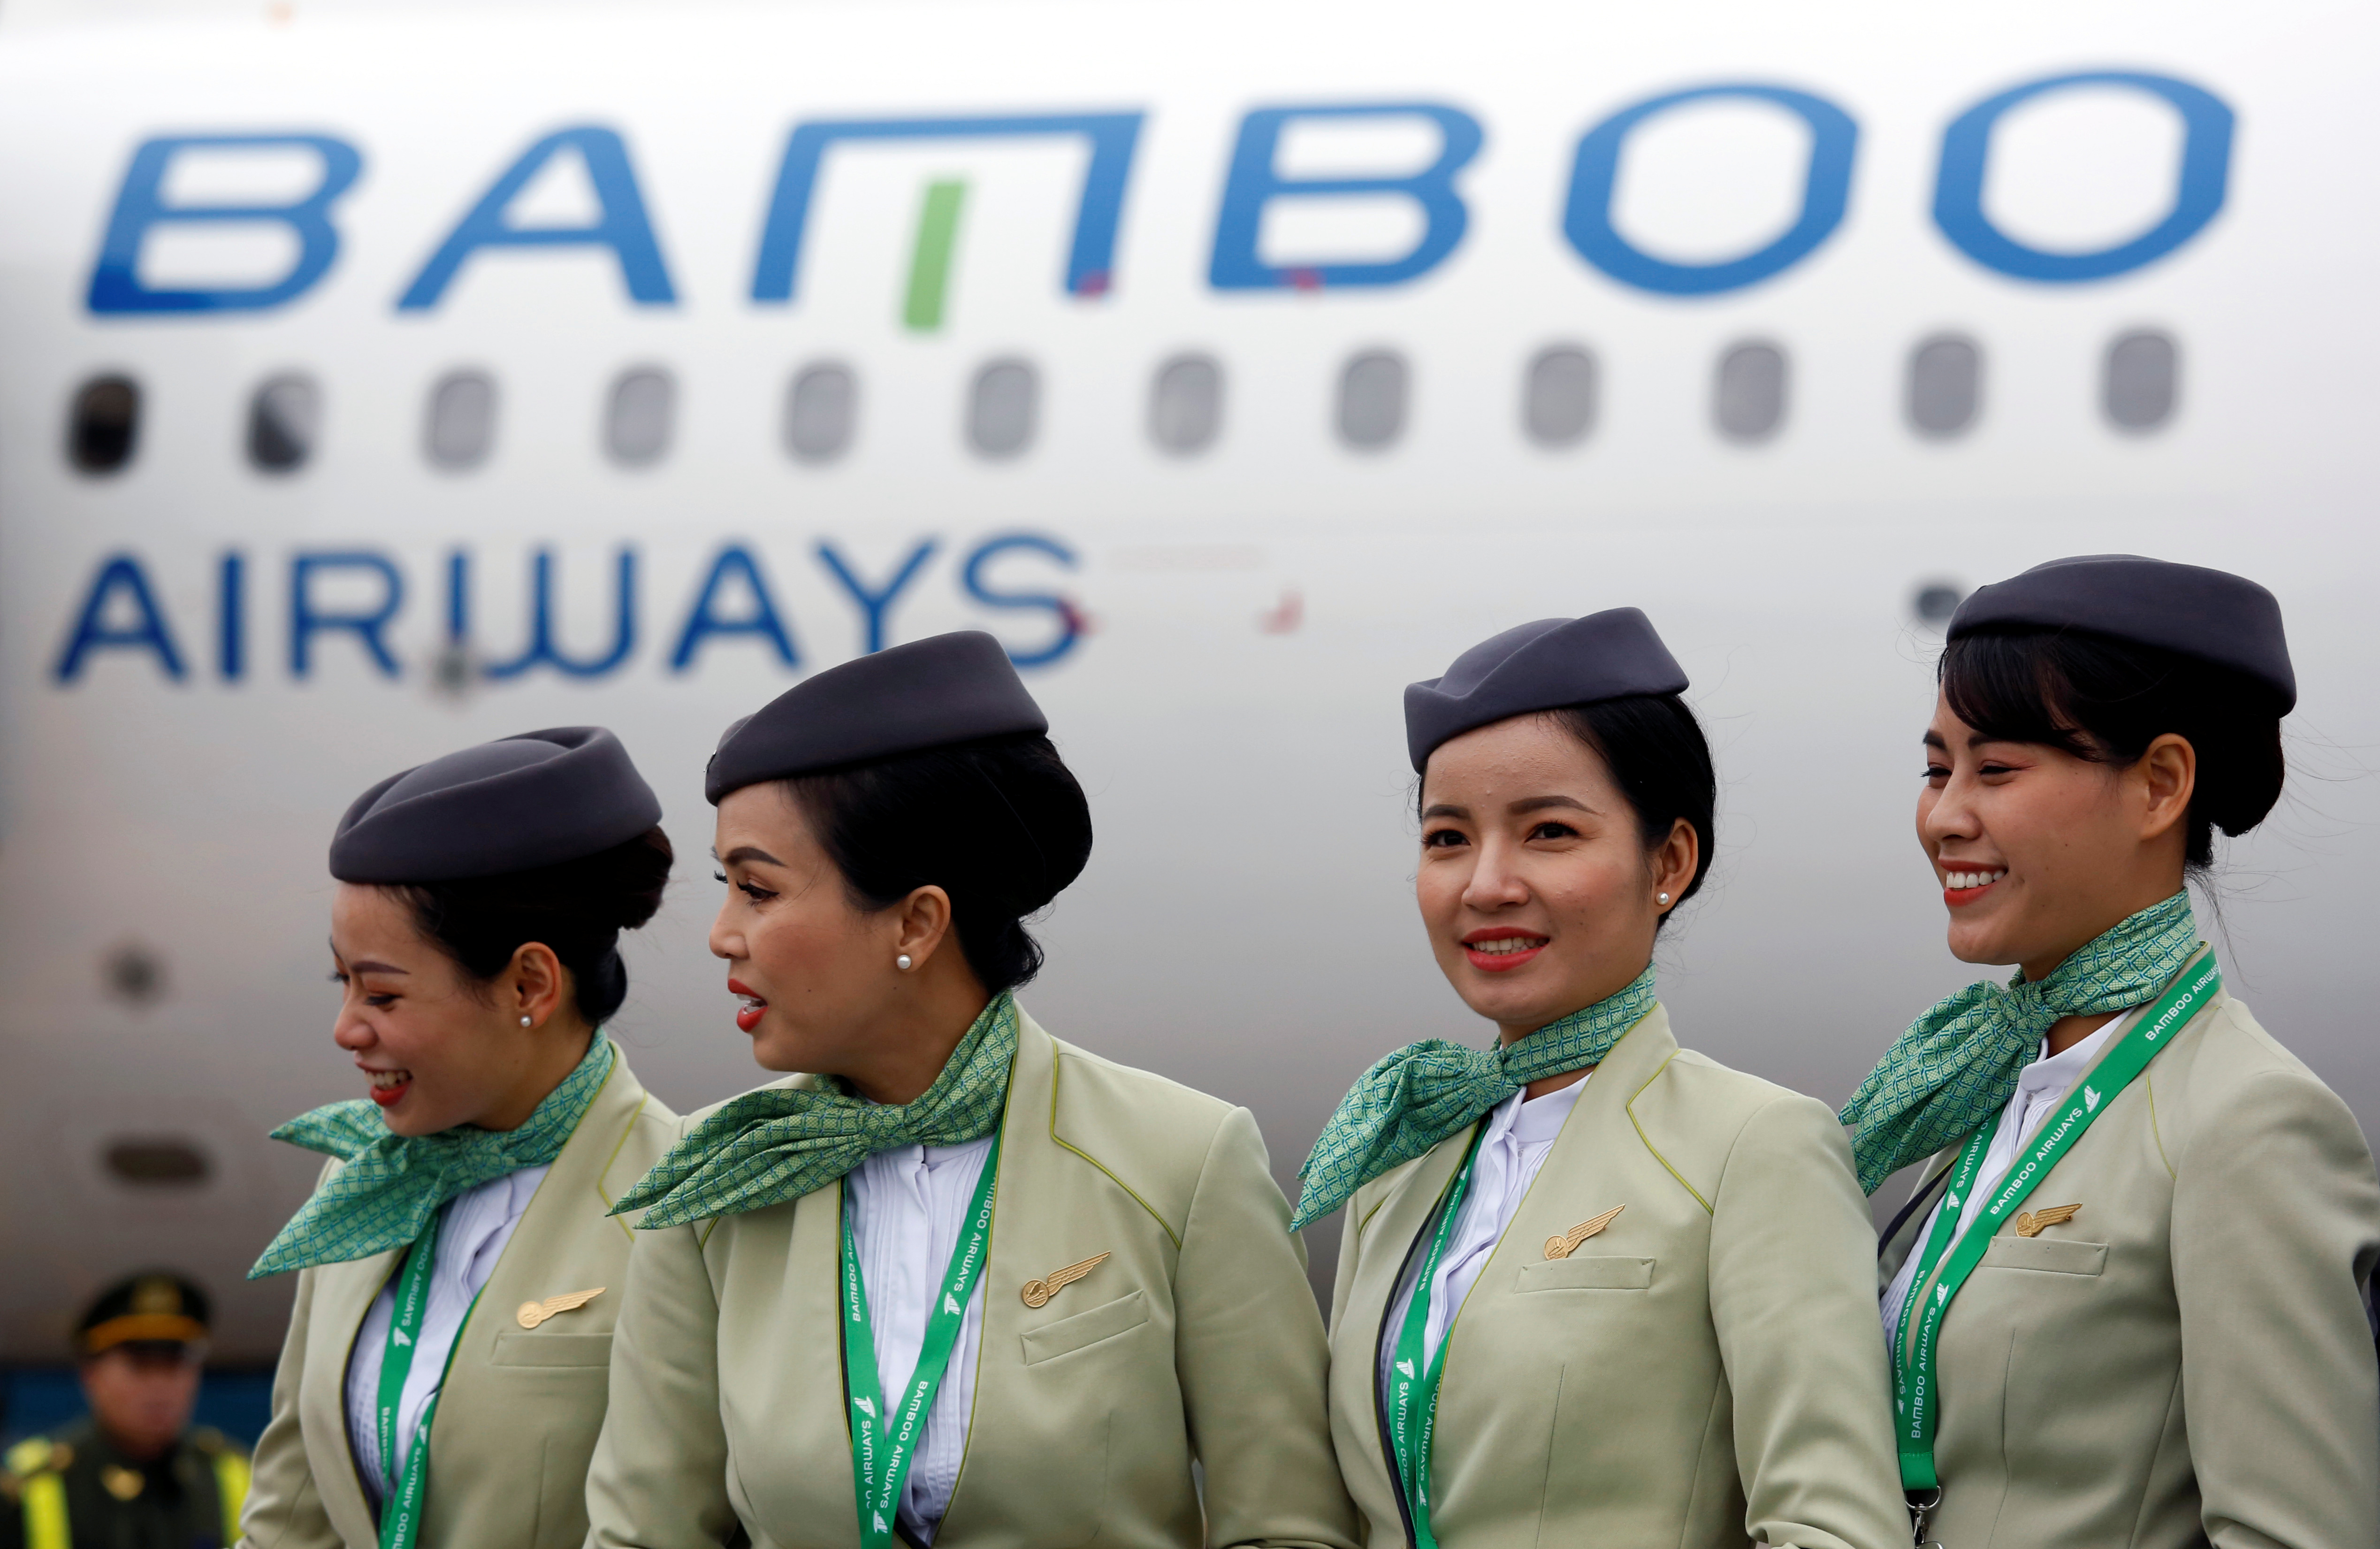 Crew members stand near an Airbus A321 aircraft of Bamboo Airways before a flight at Noi Bai airport in Hanoi, Vietnam January 16, 2019. REUTERS/Kham